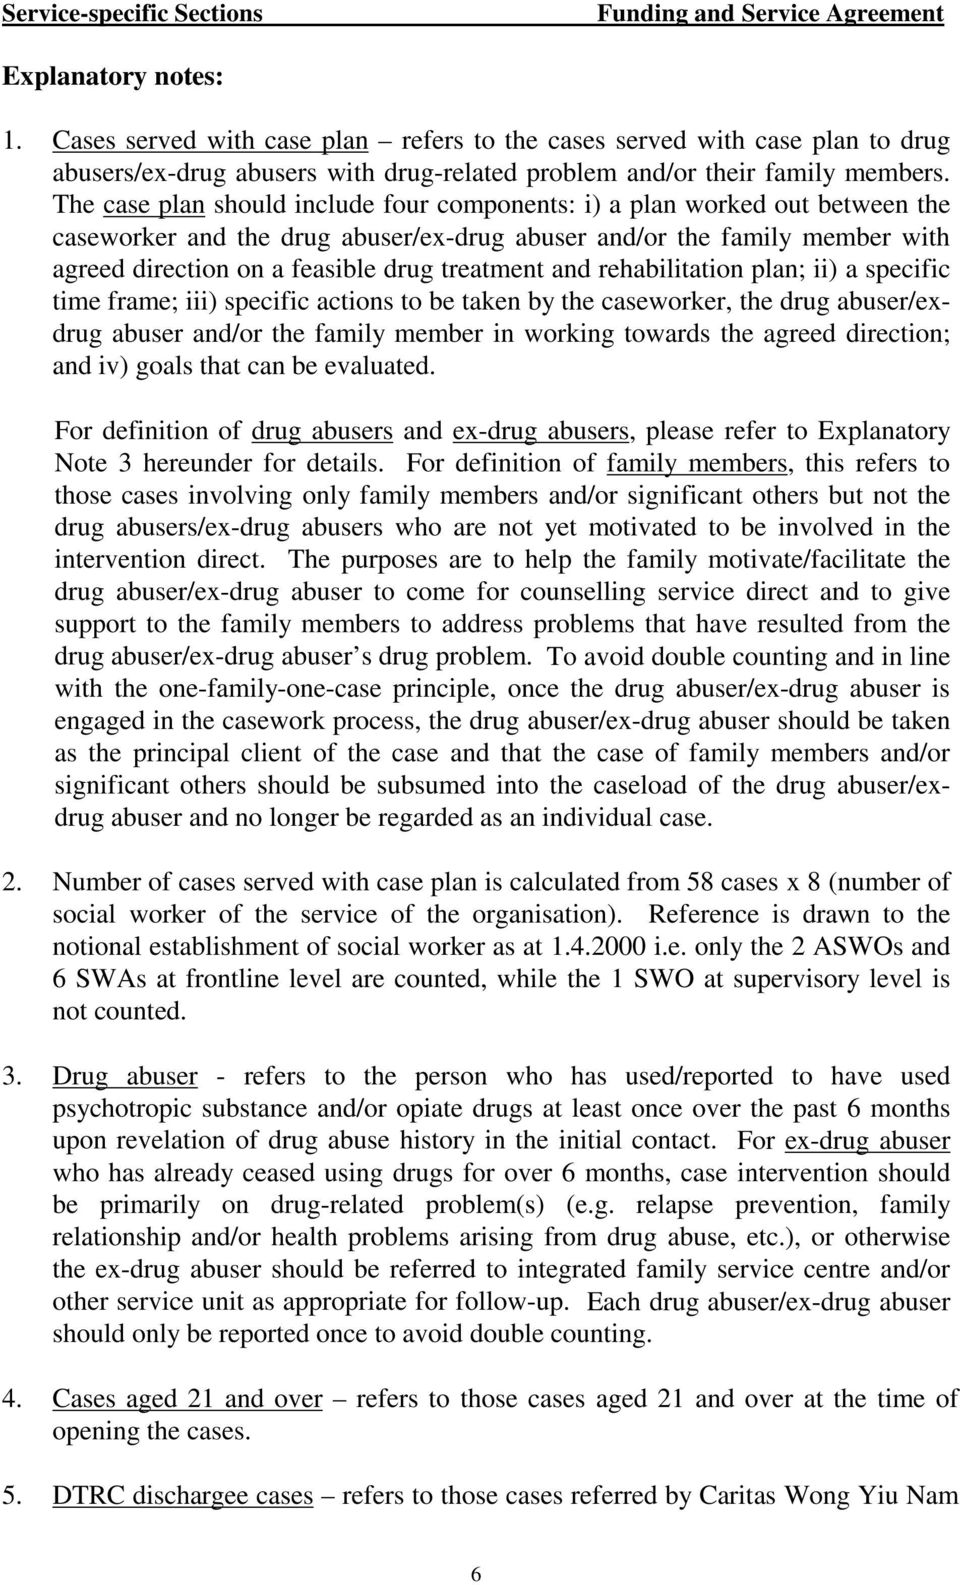 treatment and rehabilitation plan; ii) a specific time frame; iii) specific actions to be taken by the caseworker, the drug abuser/exdrug abuser and/or the family member in working towards the agreed